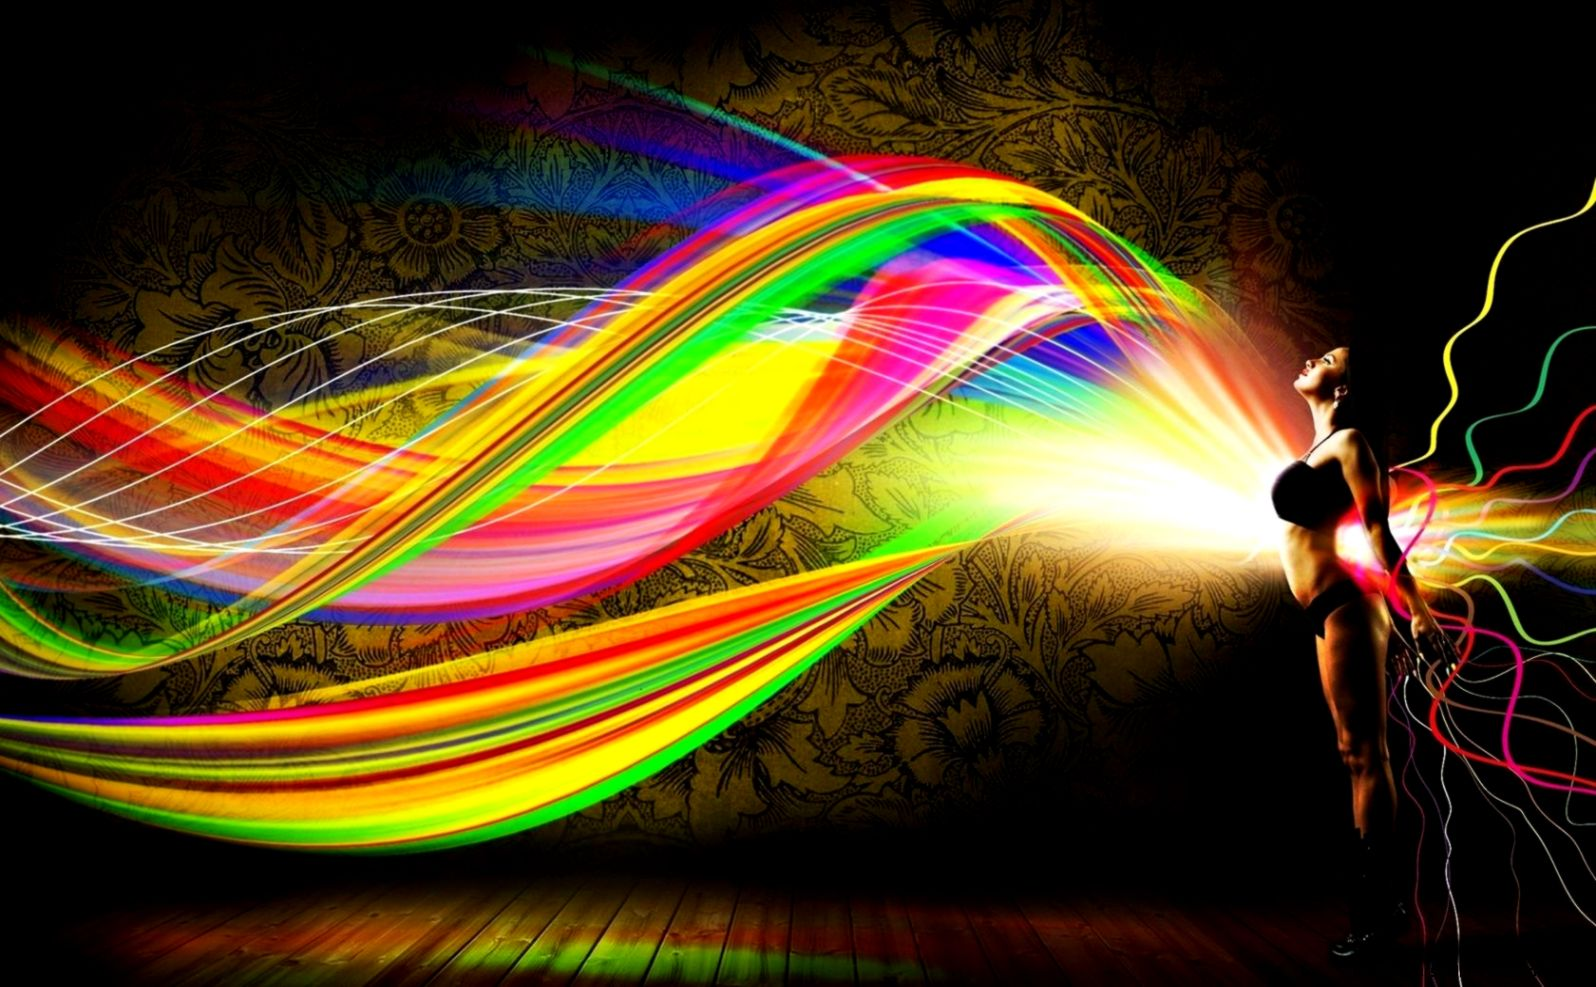 Hd Wallpaper Abstract Bright | Wallpapers Gallery